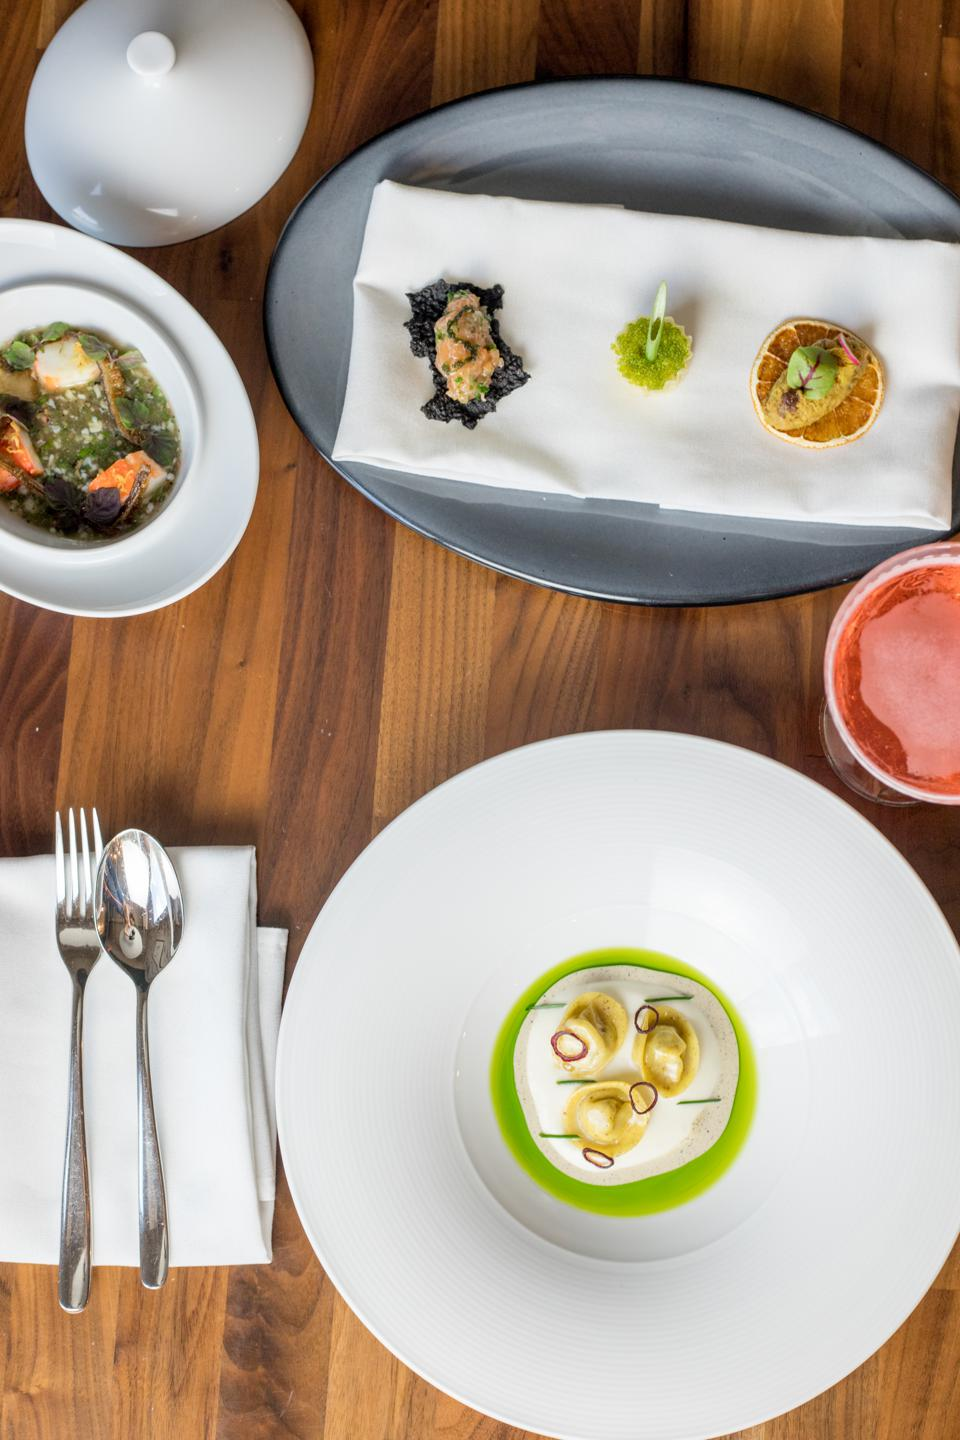 Three different dishes situated on a wooden table.